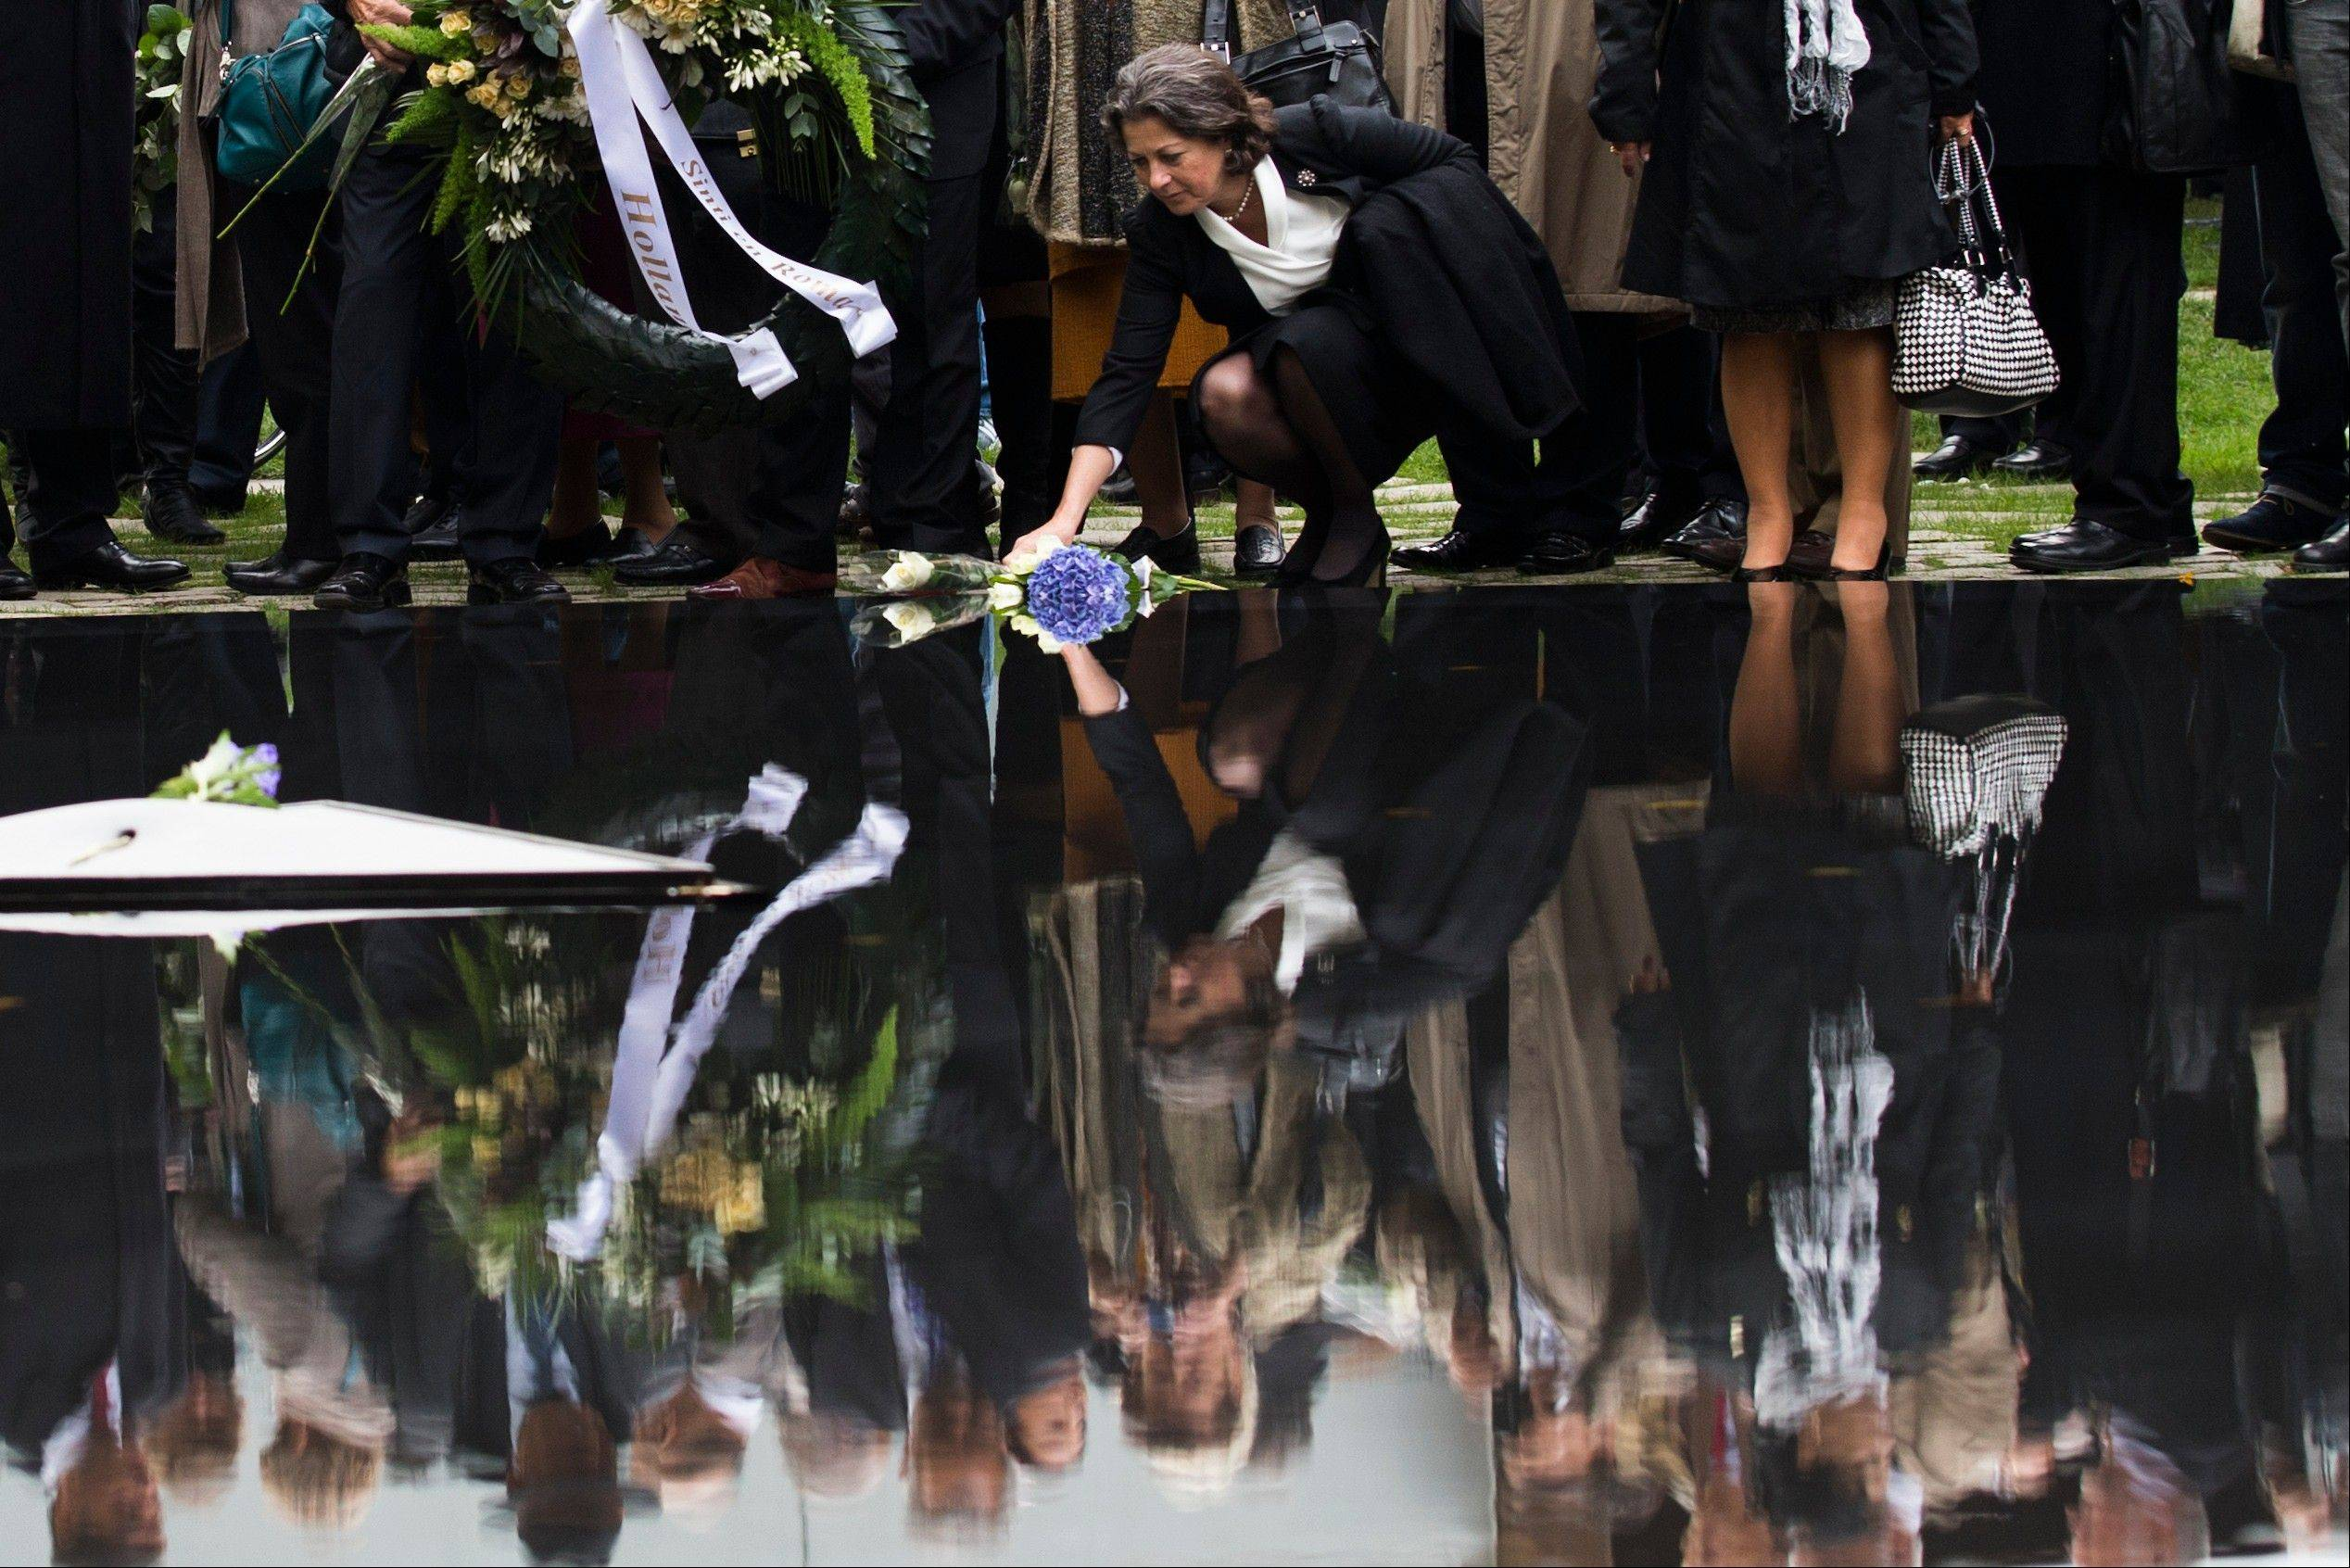 A woman lays down a flower during the inaugural ceremony of the memorial to the murdered European Sinti and Roma who were persecuted as 'Gypsies' in Berlin, Wednesday, Oct. 24, 2012. The memorial was designed by artist Dani Karavan consists of a well with a retractable stele with panels carrying information on the persecution and mass murder of this minority under the National Socialist regime.